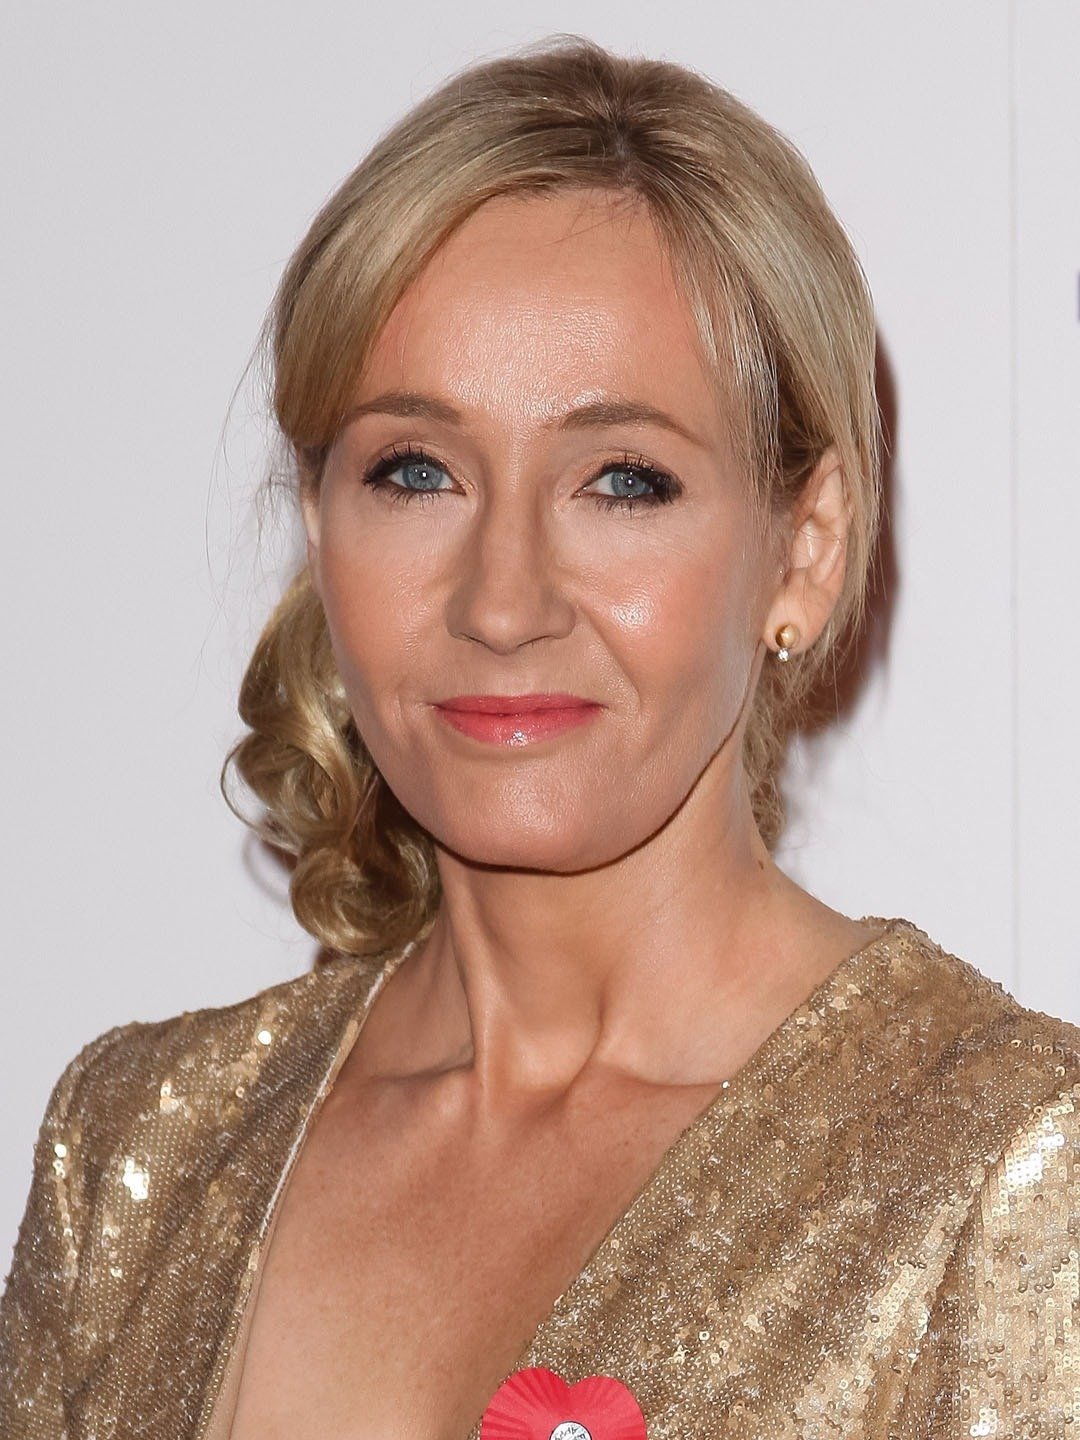 Image result for J.K. Rowling